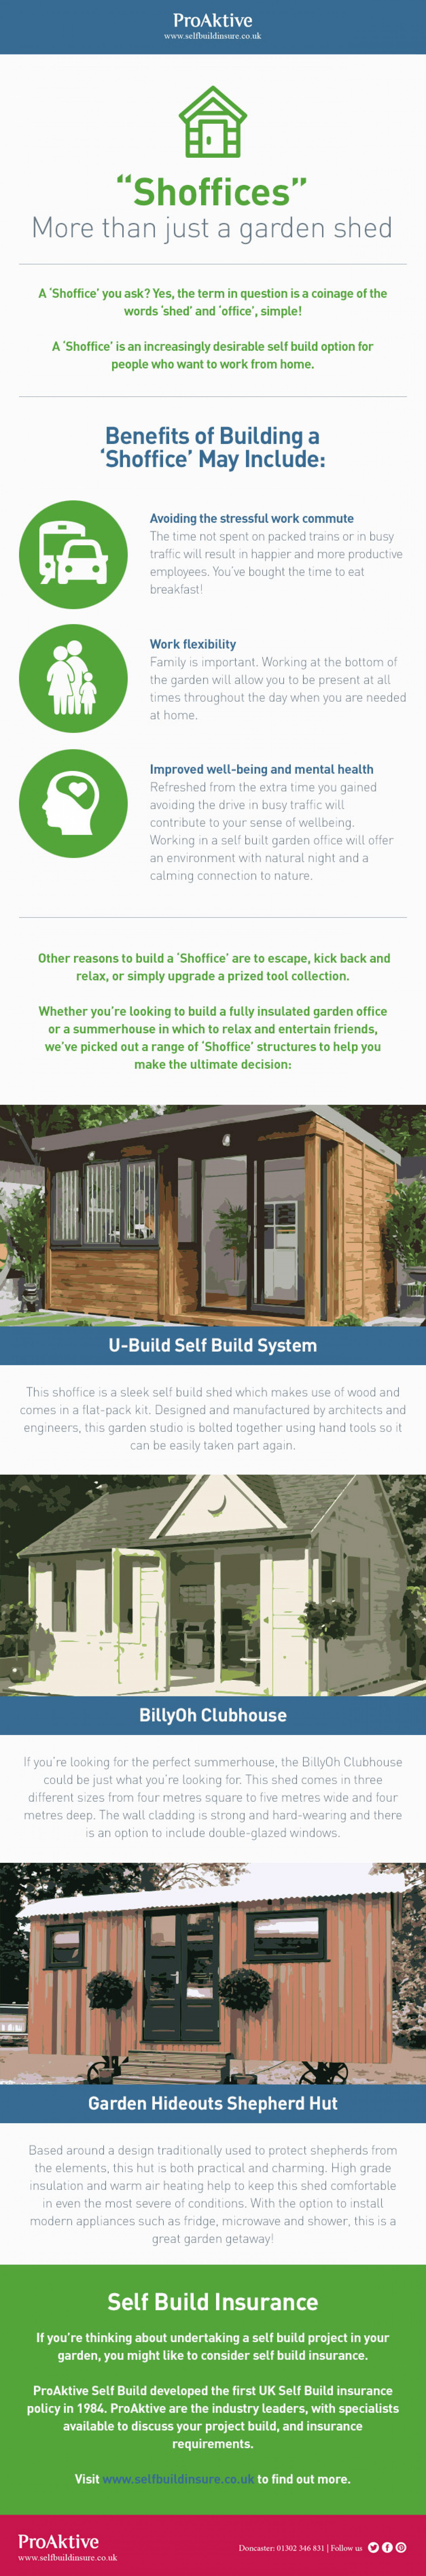 """""""Shoffices"""" More than just a garden shed Infographic"""